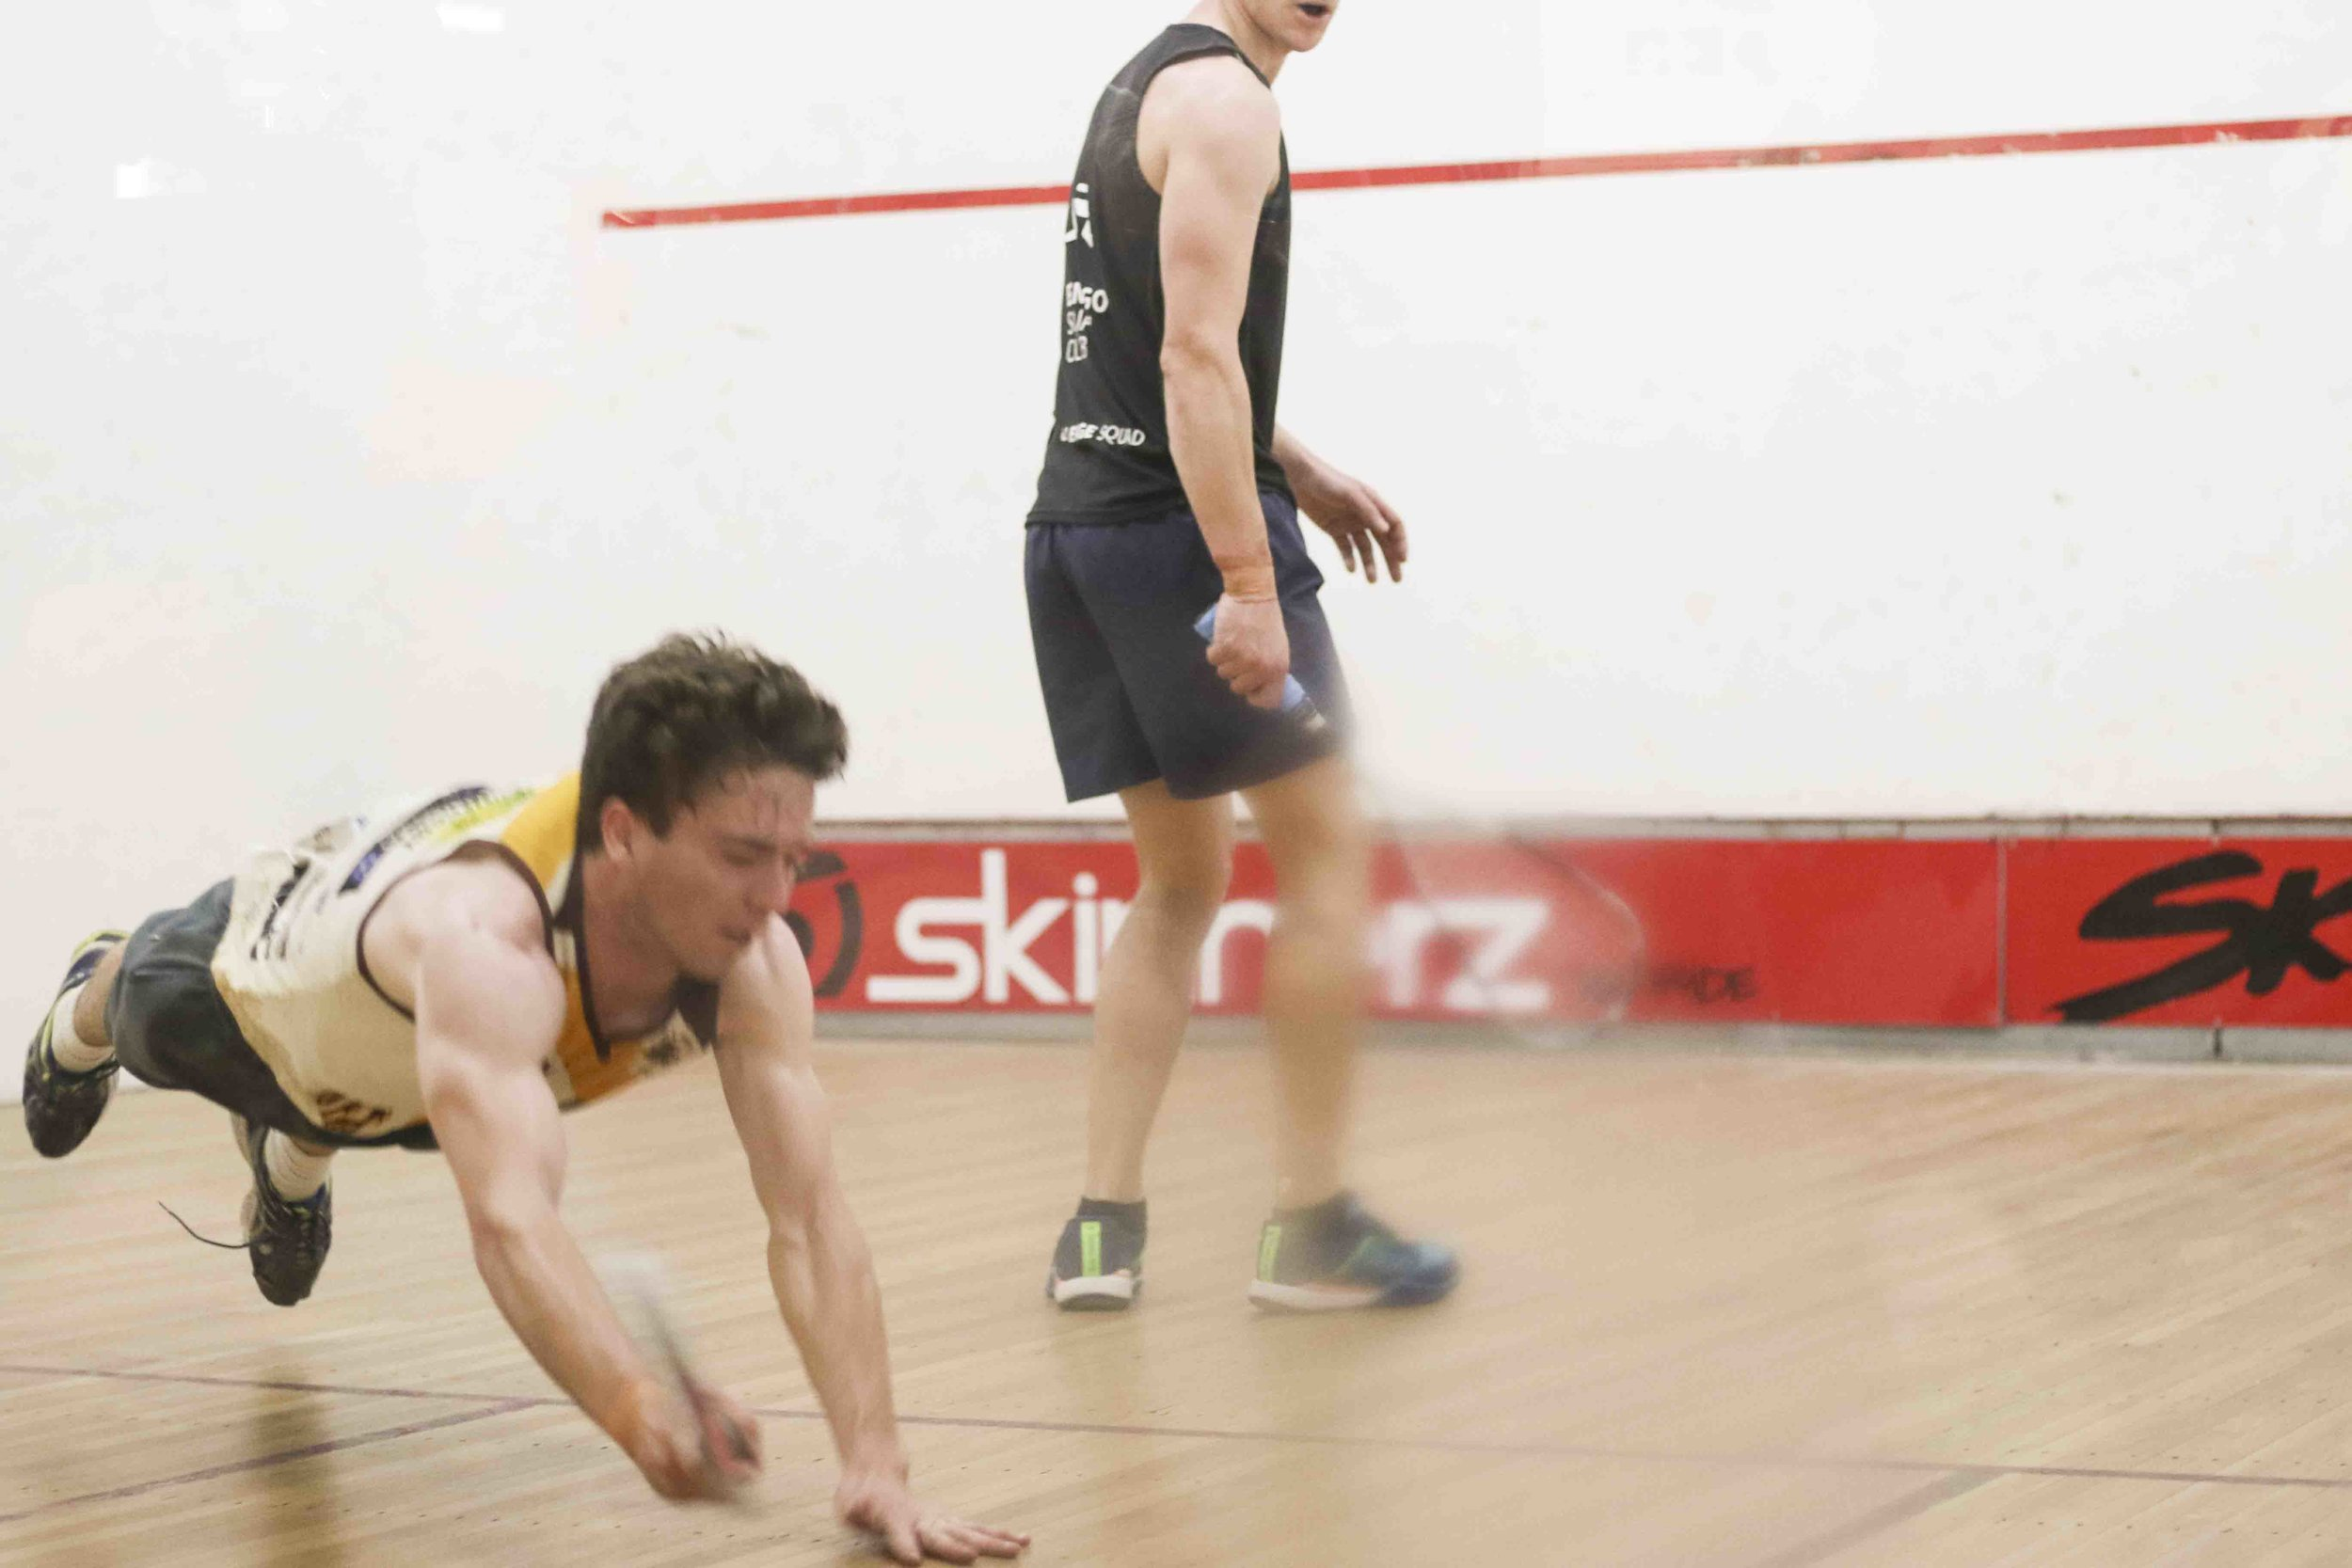 fun sport to play in bendigo squash club